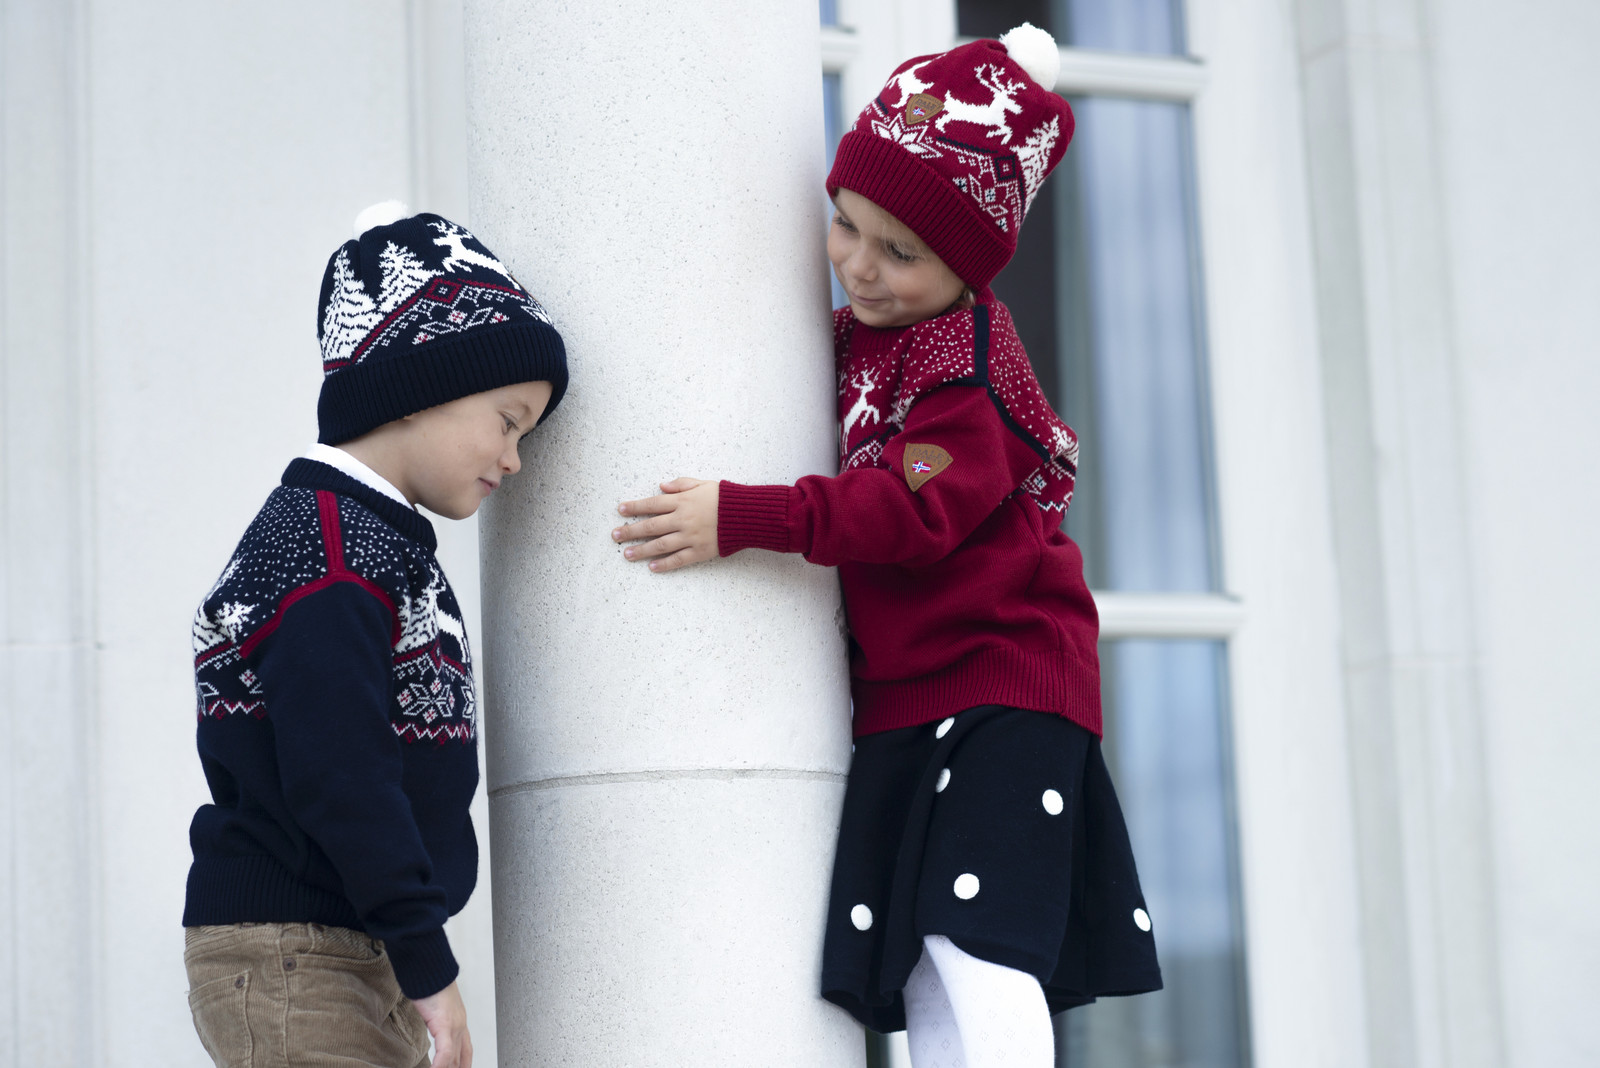 Kids playing wearing Dale of Norway Dale Christmas sweaters in Navy, 93941-C, and Red Rose, 93941-B